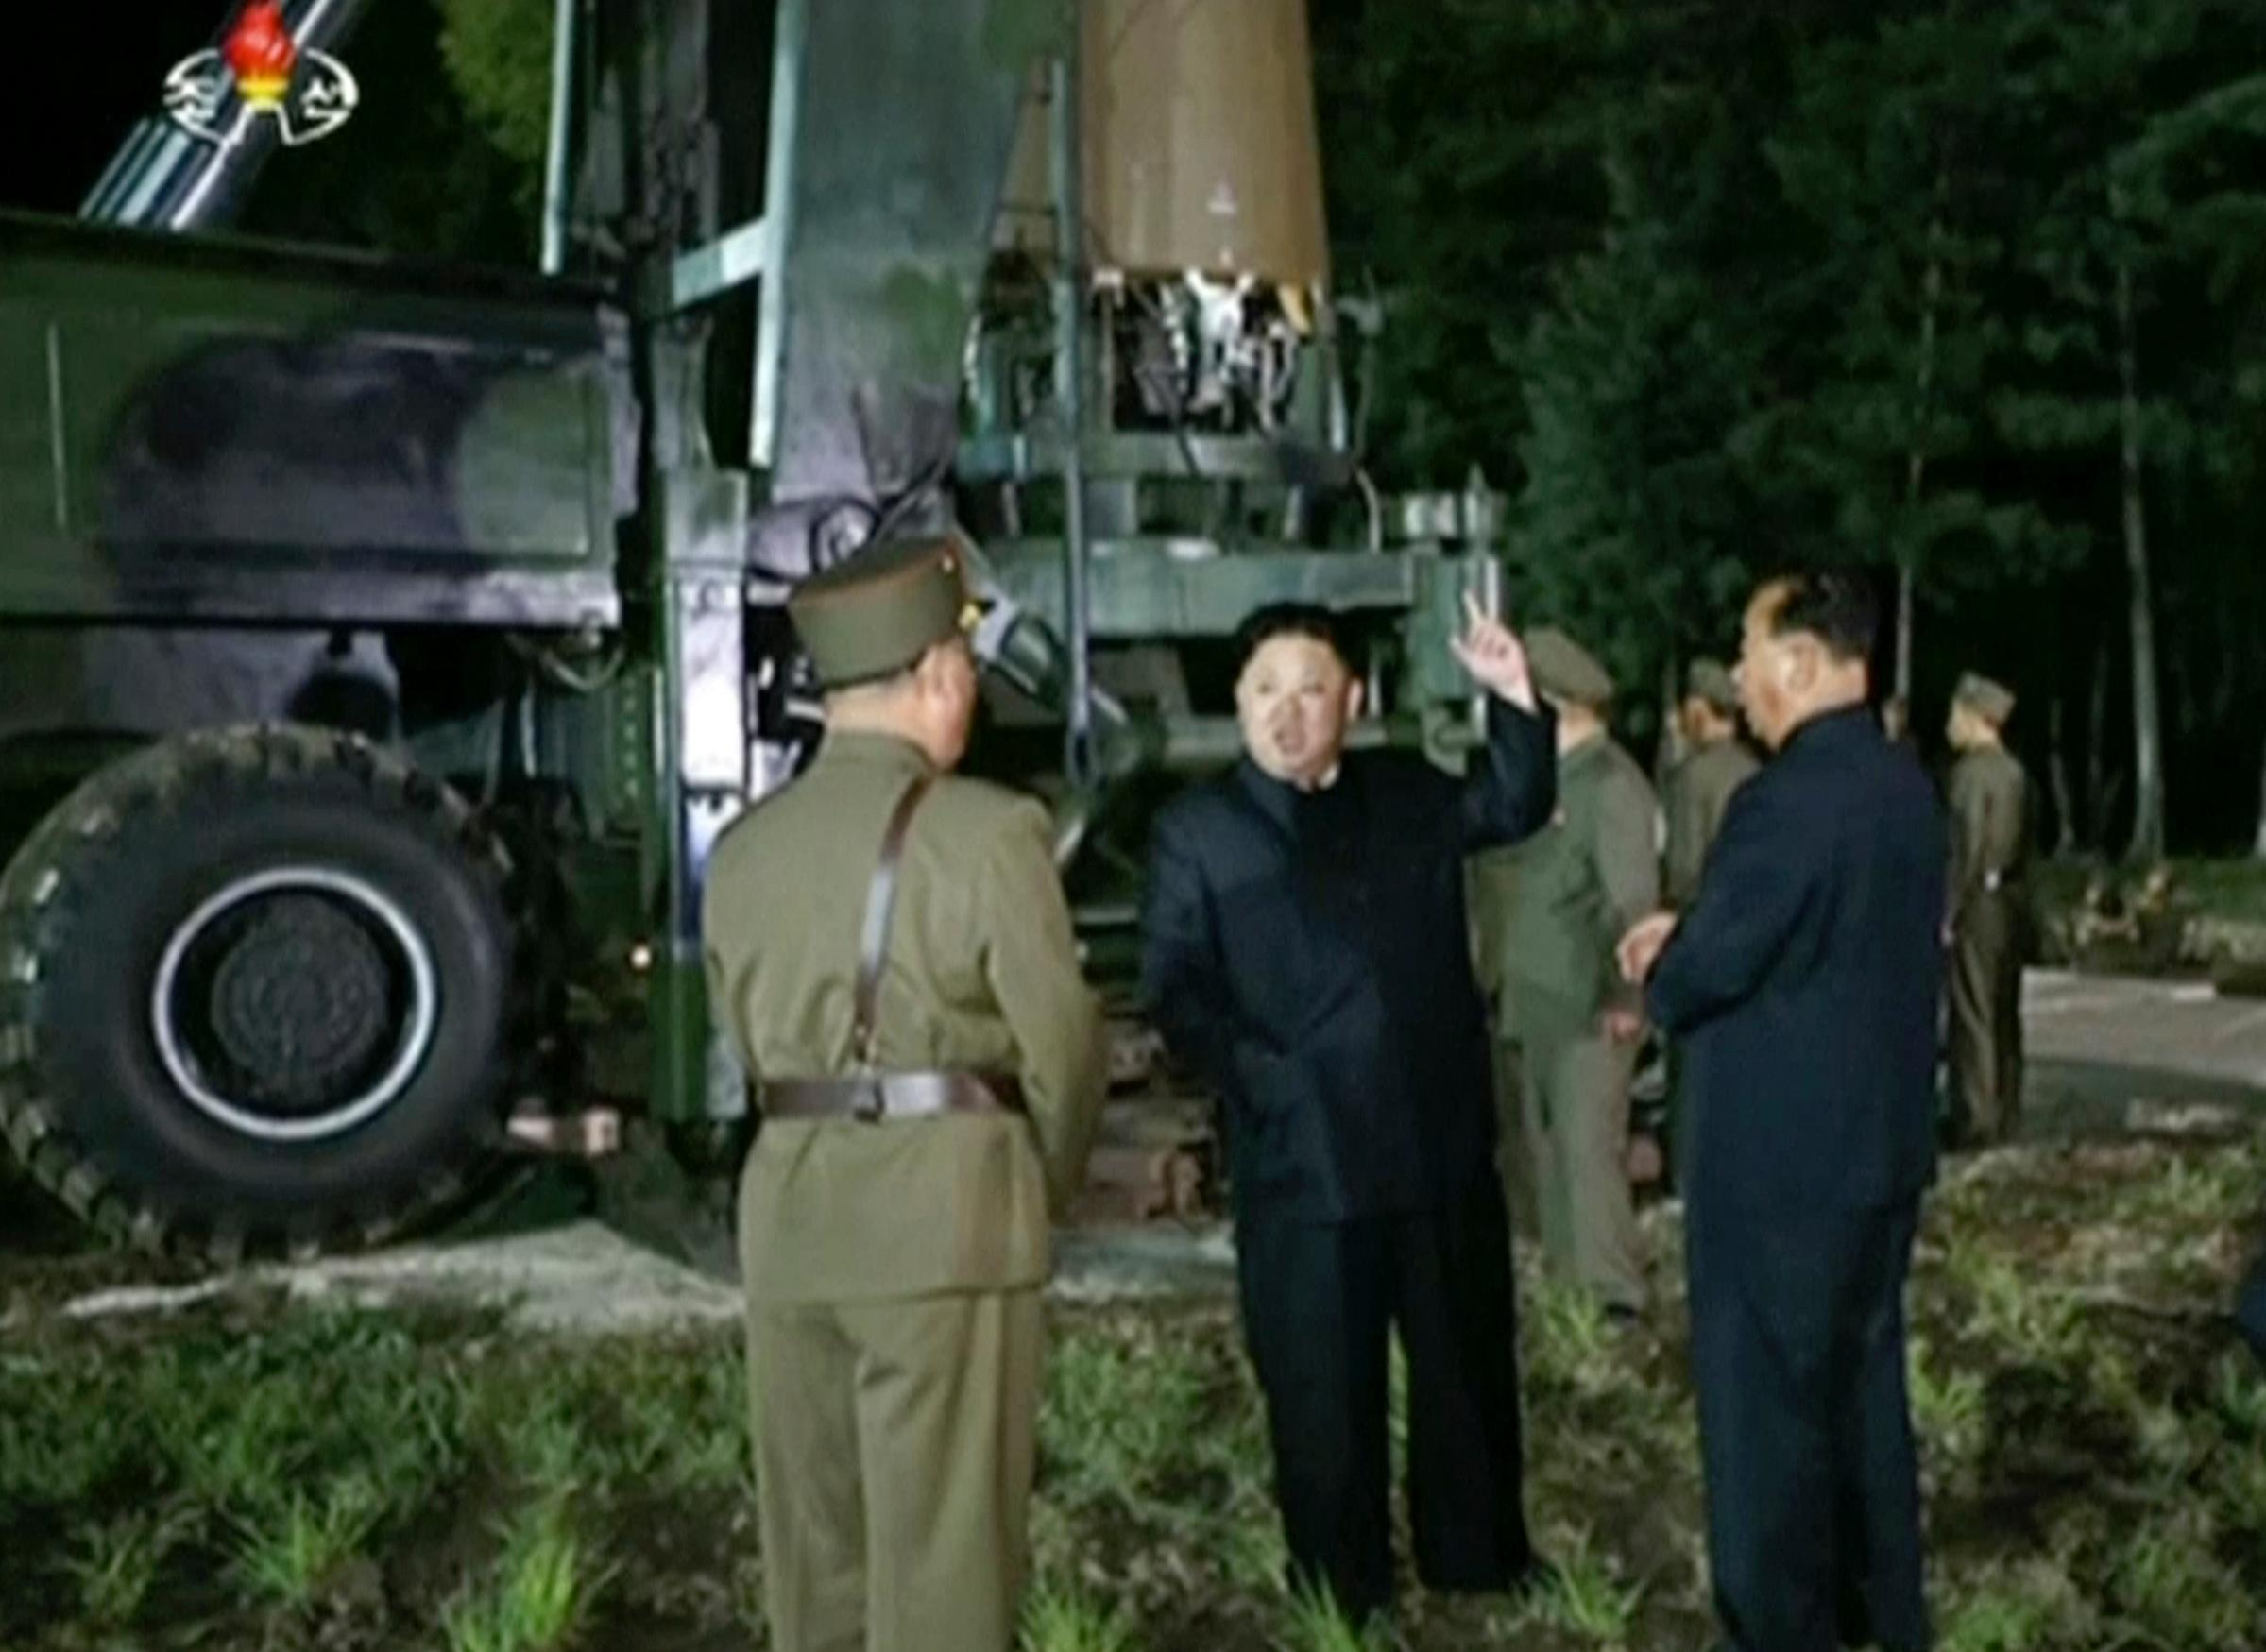 FILE - In this file image made from video by North Korea's KRT released on July 28, 2017, North Korean leader Kim Jung Un, second from right, gestures at the site of a missile test at an undisclosed location in North Korea. North Korea claims it is in the final stages of preparing a plan to launch four intermediate-range ballistic missiles over Japan and into waters just off the island of Guam, where about 7,000 U.S. troops are based. Kim has radically accelerated the pace of the North's missile development, and many experts believe it could have an intercontinental ballistic missile able to hit major American cities within a year or two. (KRT via AP Video, File)